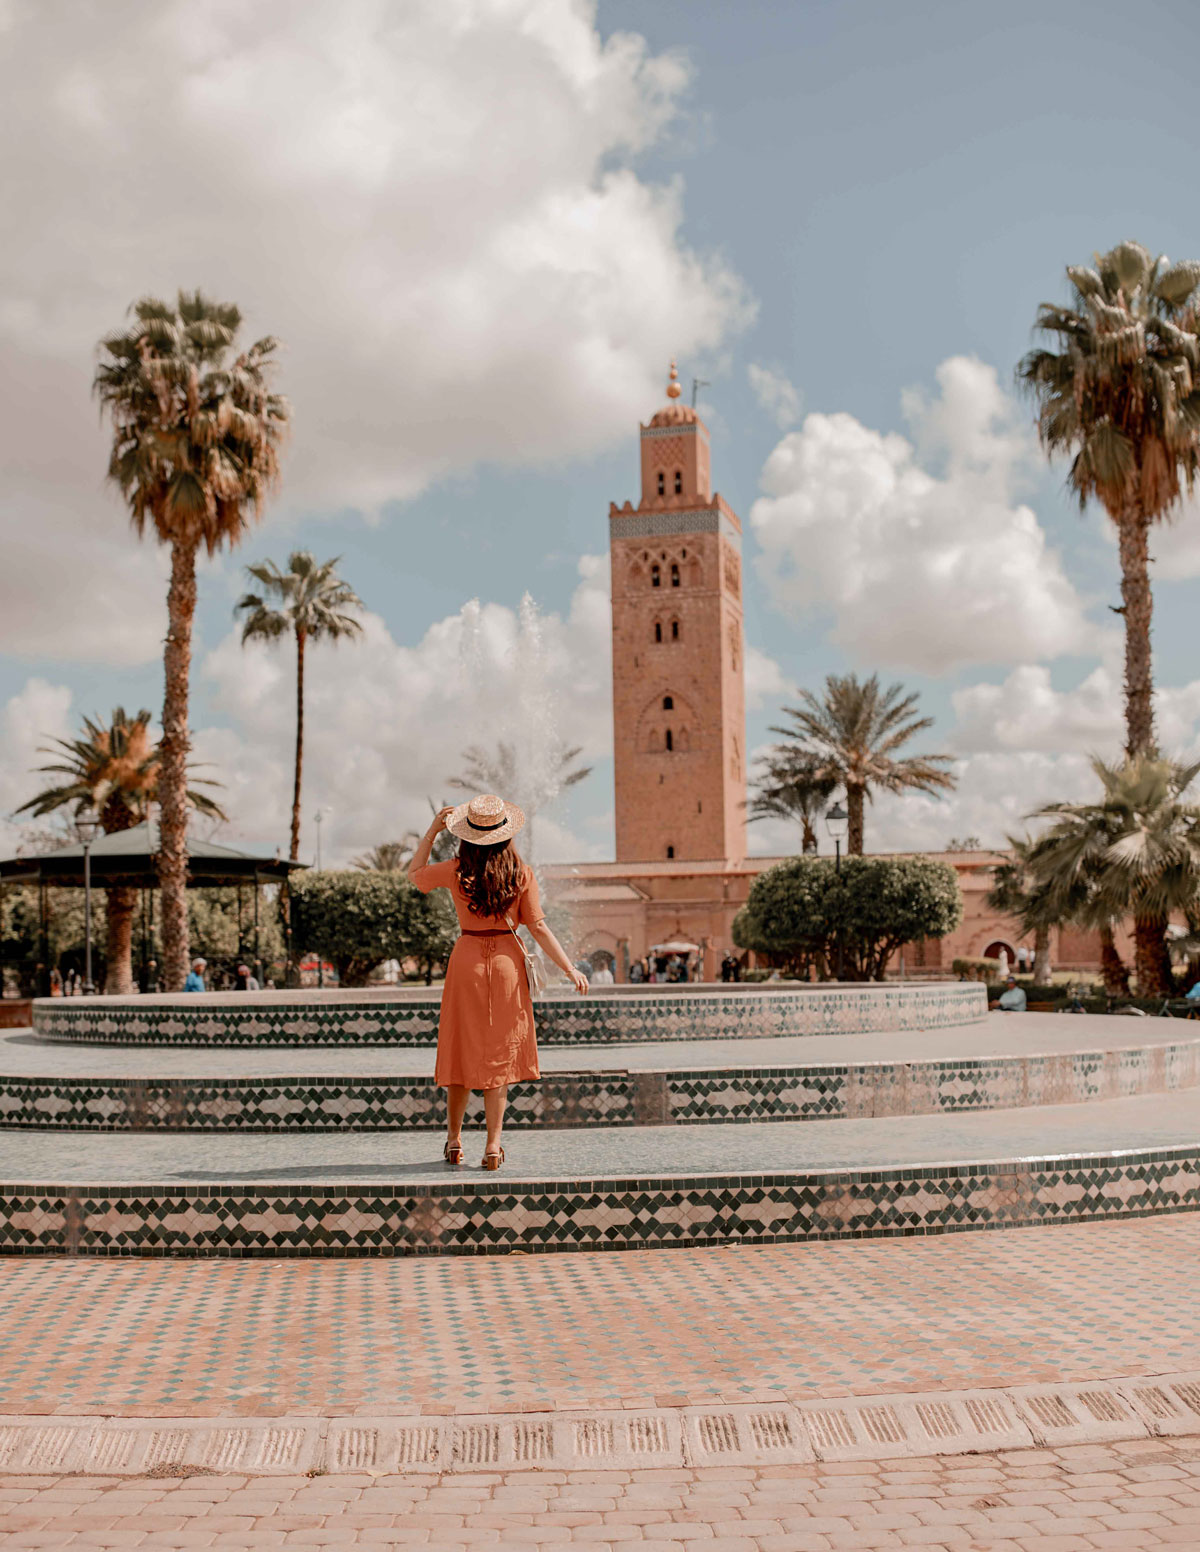 Top-things-to-do-in-marrakech-Bucket-list-kelseyinlondon-Kelsey-Heinrichs--What-to-do-in-marrakech--Where-to-go-in-marrakech-top-places-in-marrakech-Koutoubia-Mosque